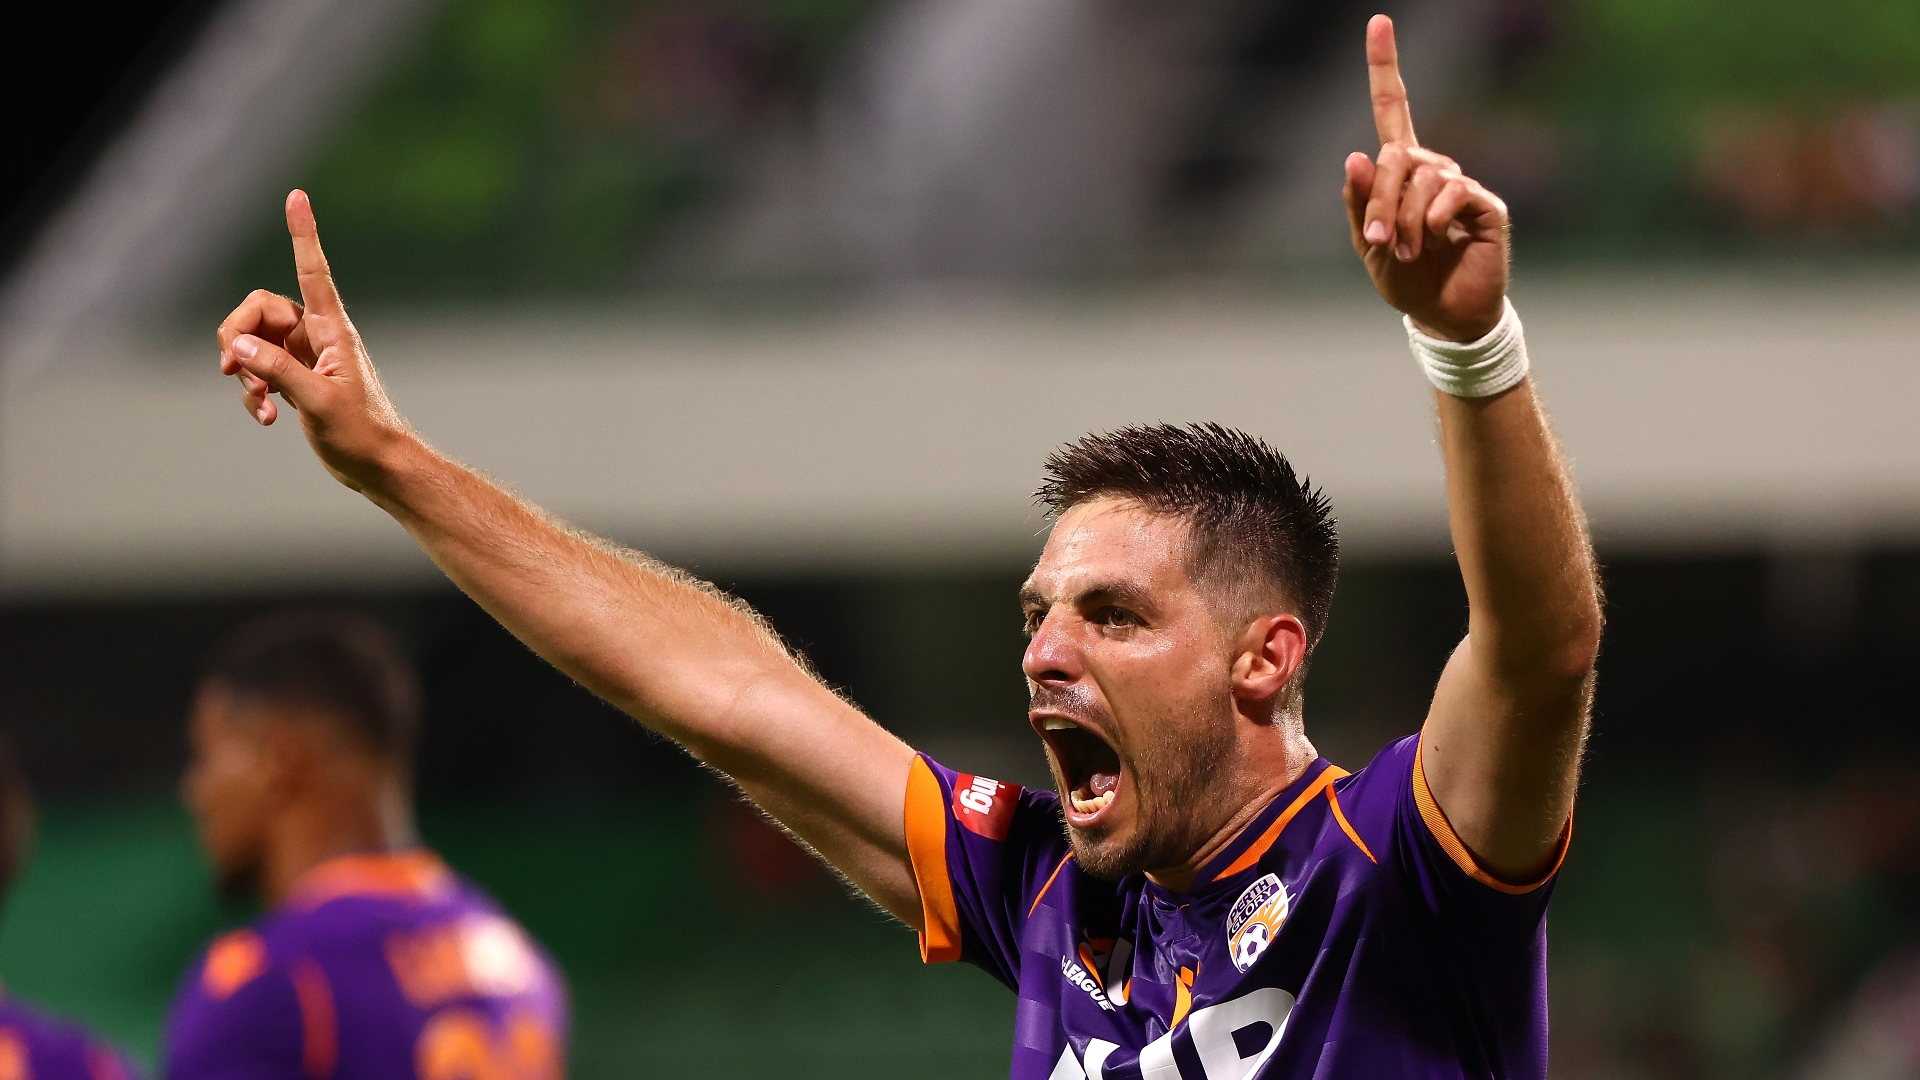 Perth Glory 3-1 Brisbane Roar: Castro and Fornaroli fire for in-form hosts